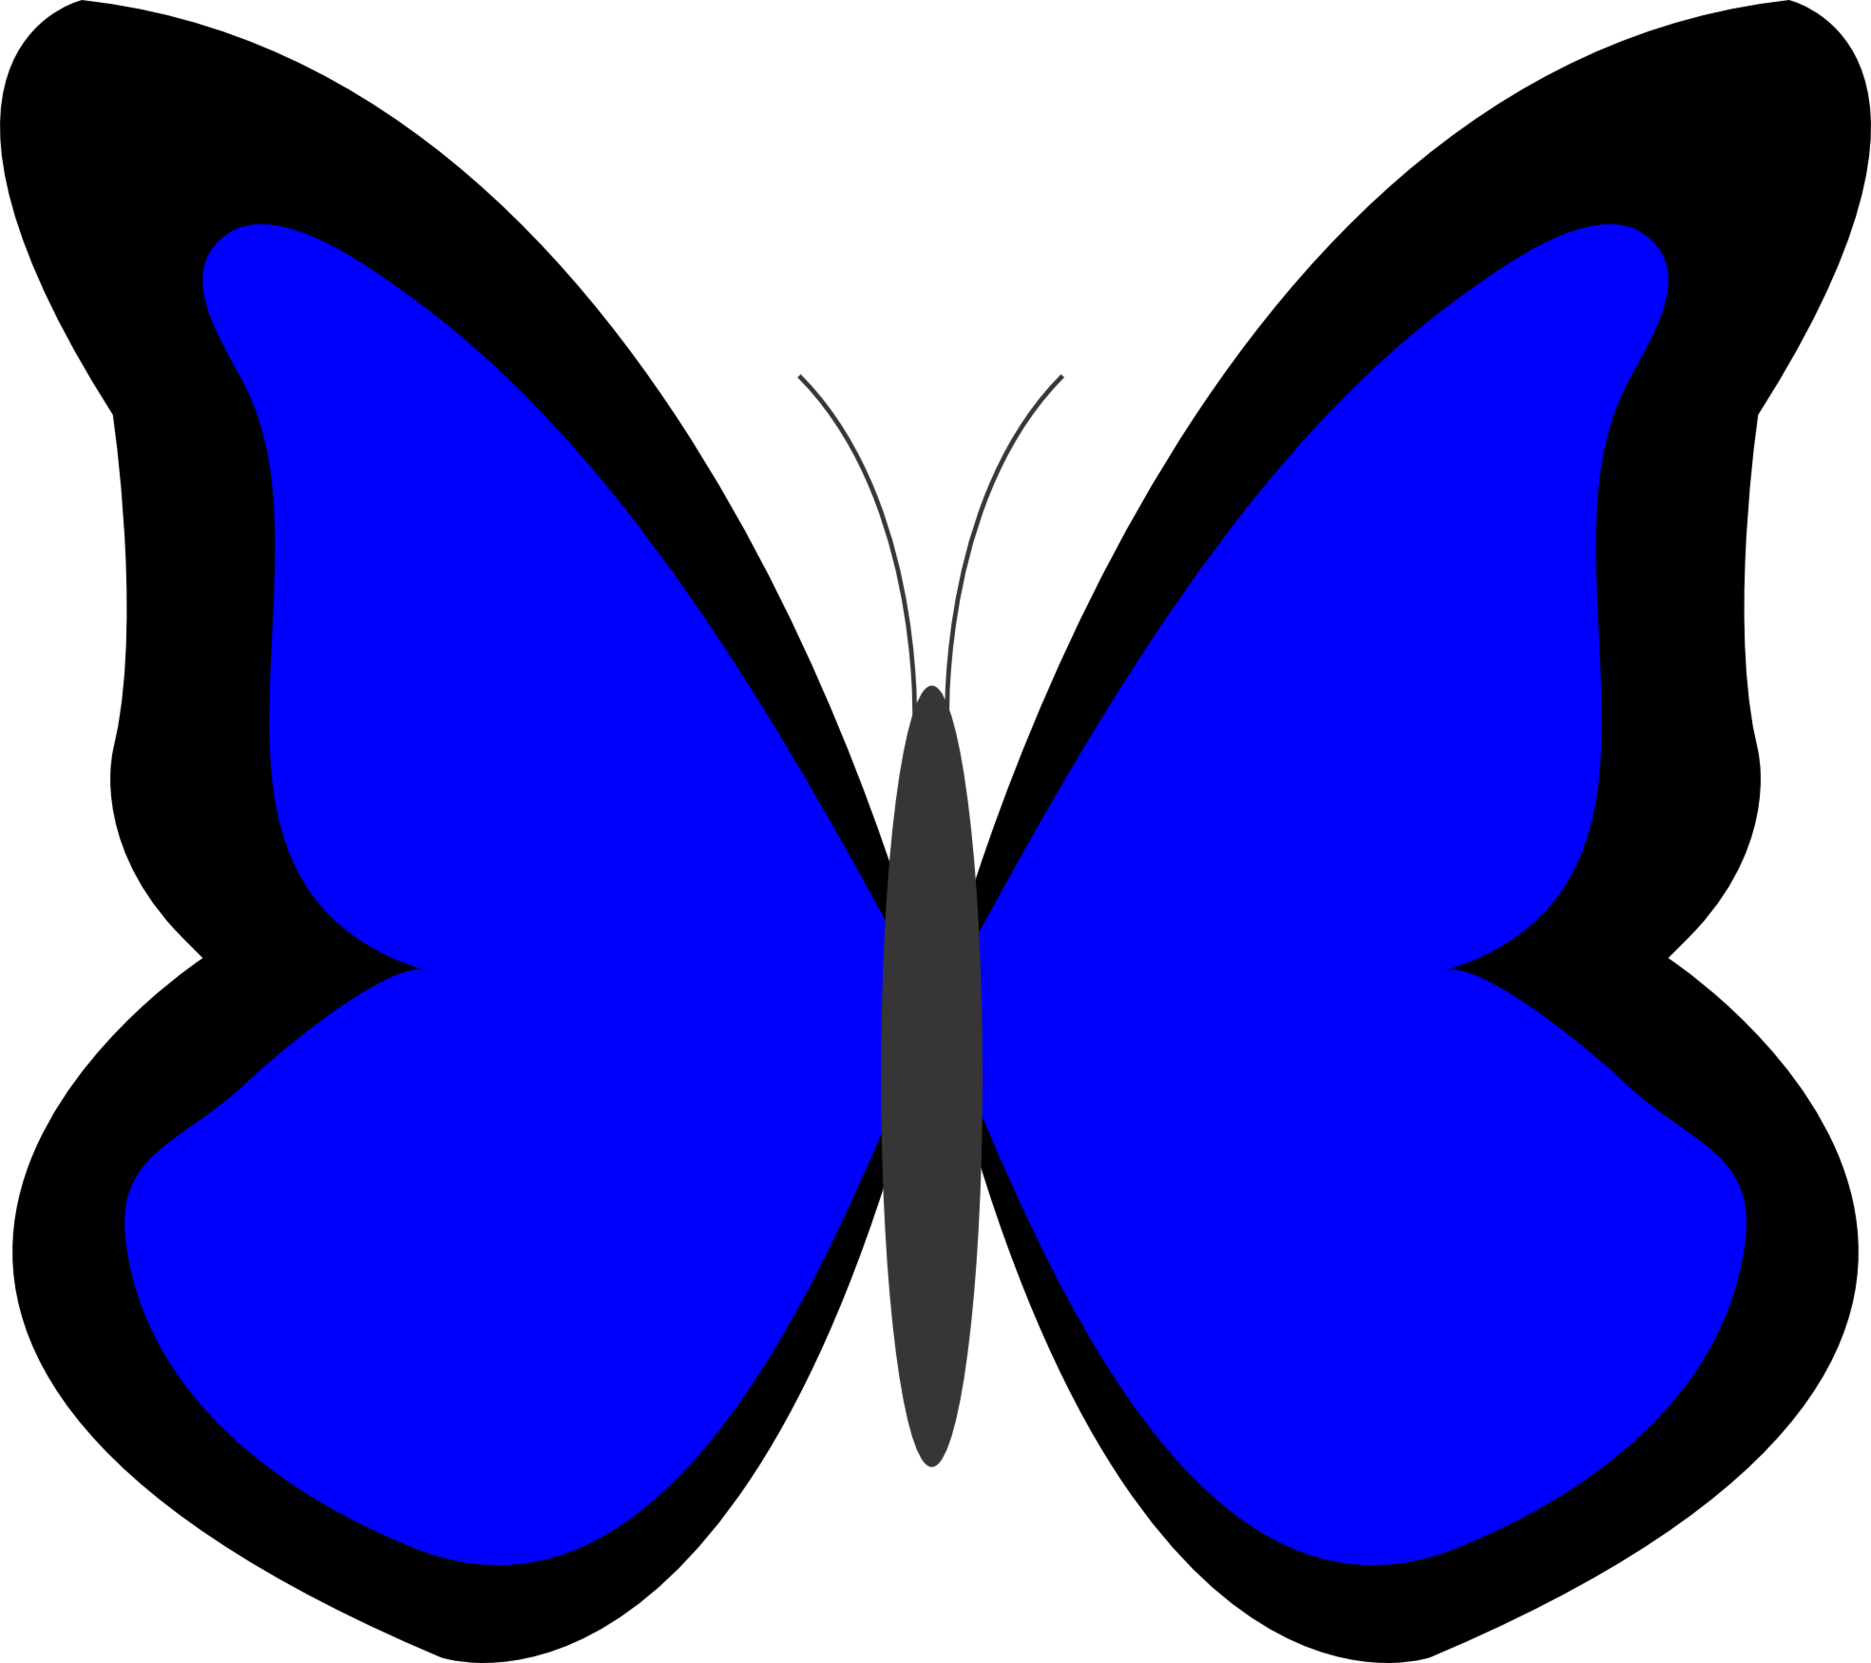 Symmetry clipart butterfly Clipart Clipart Clipart Image Butterfly